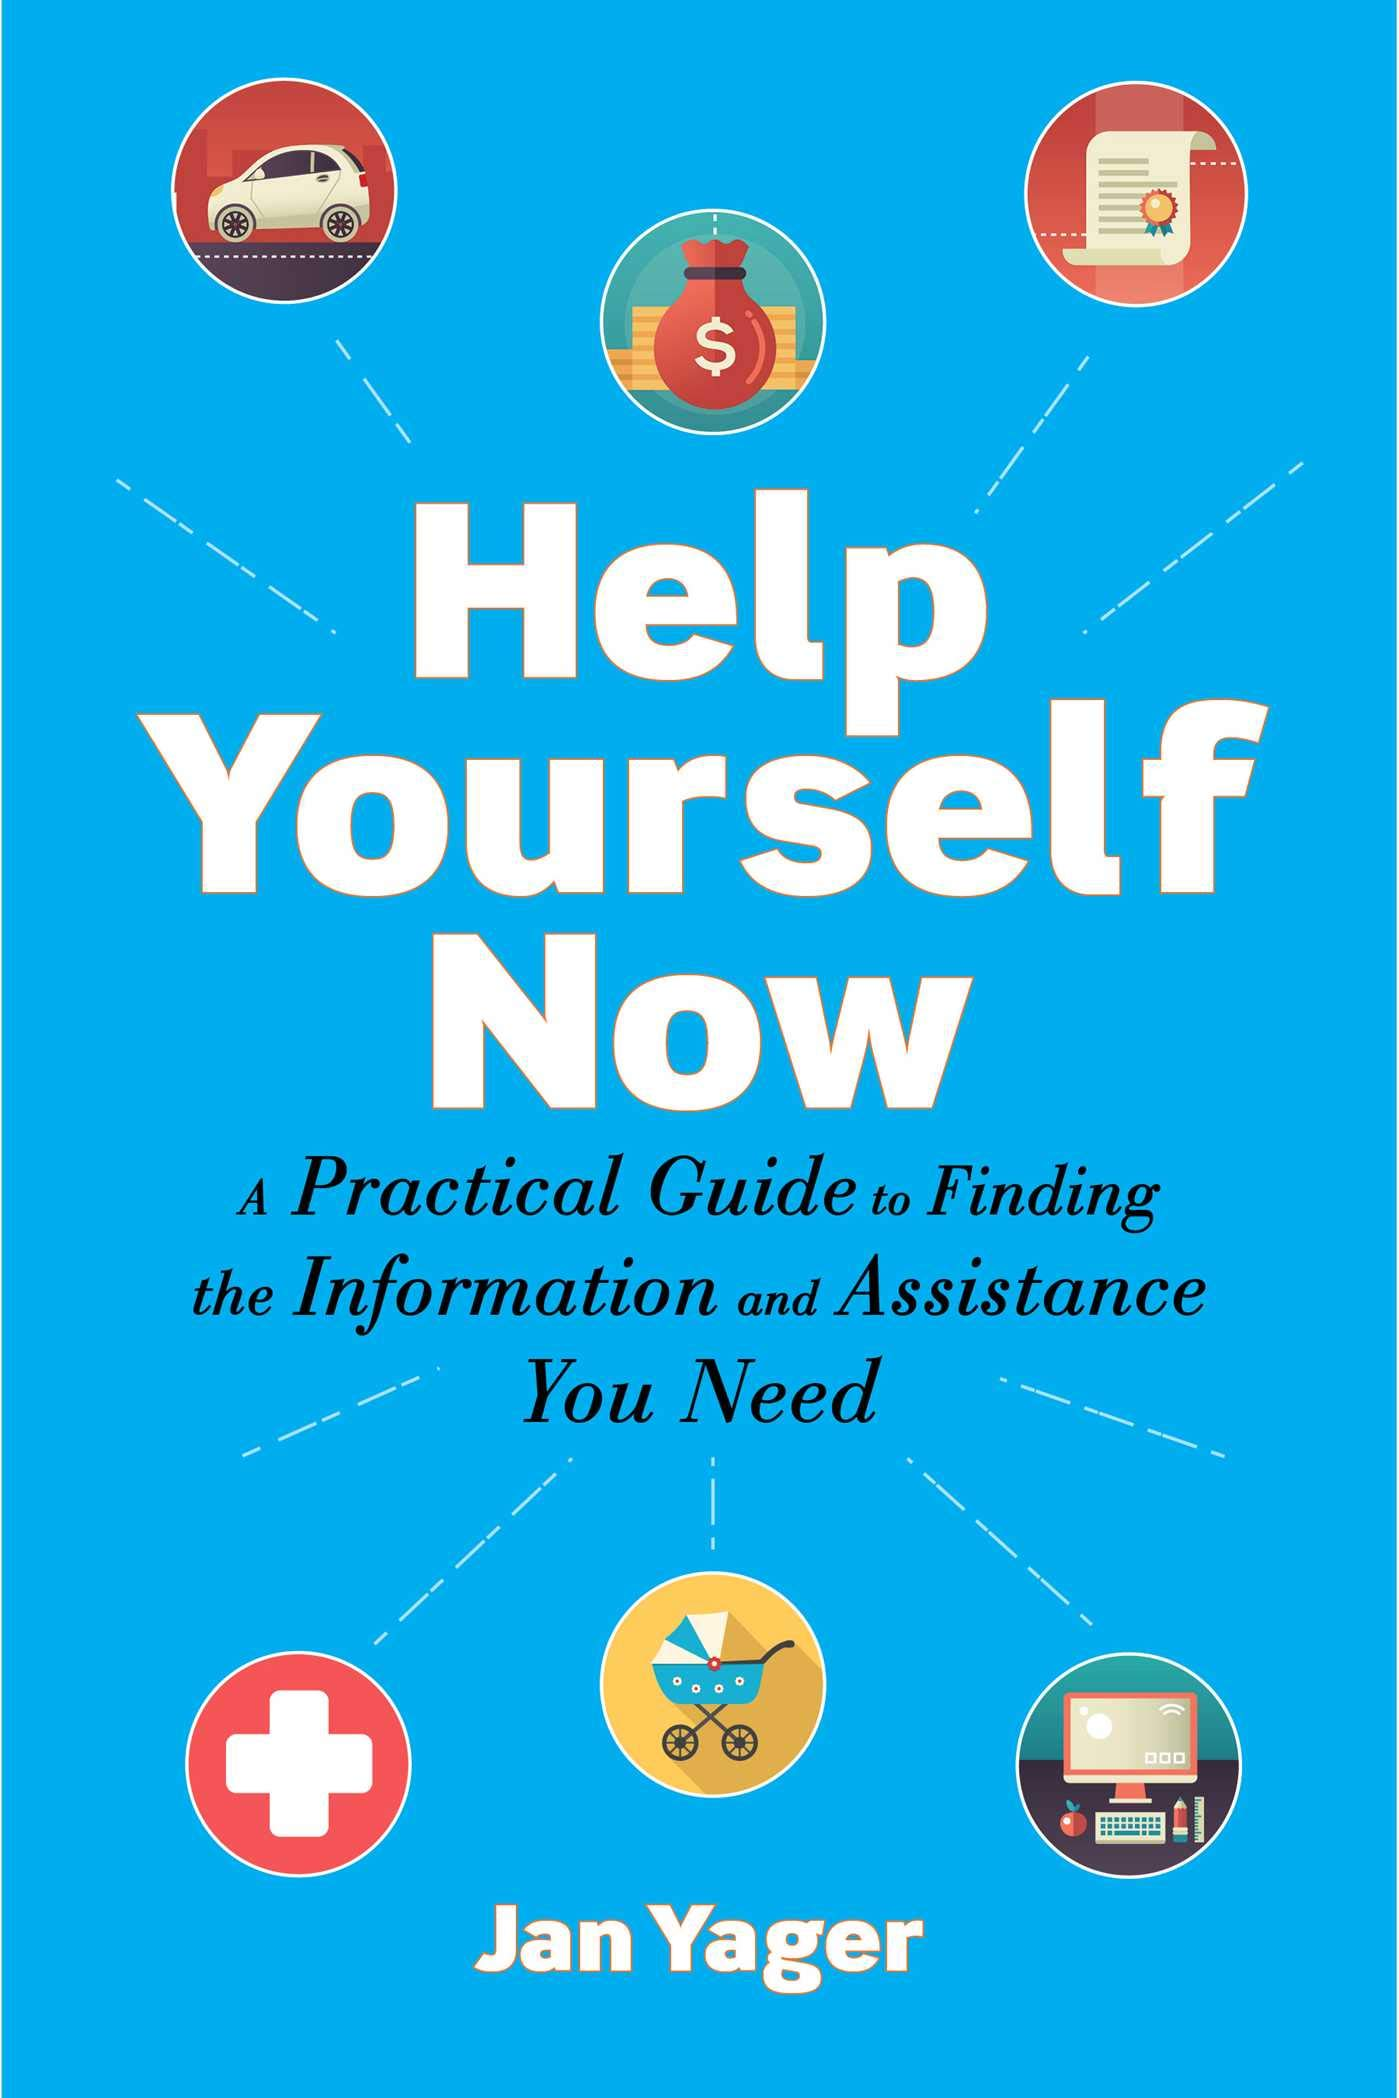 Help Yourself Now: A Practical Guide to Finding the Information and  Assistance You Need: Jan Yager: 9781621536307: Amazon.com: Books